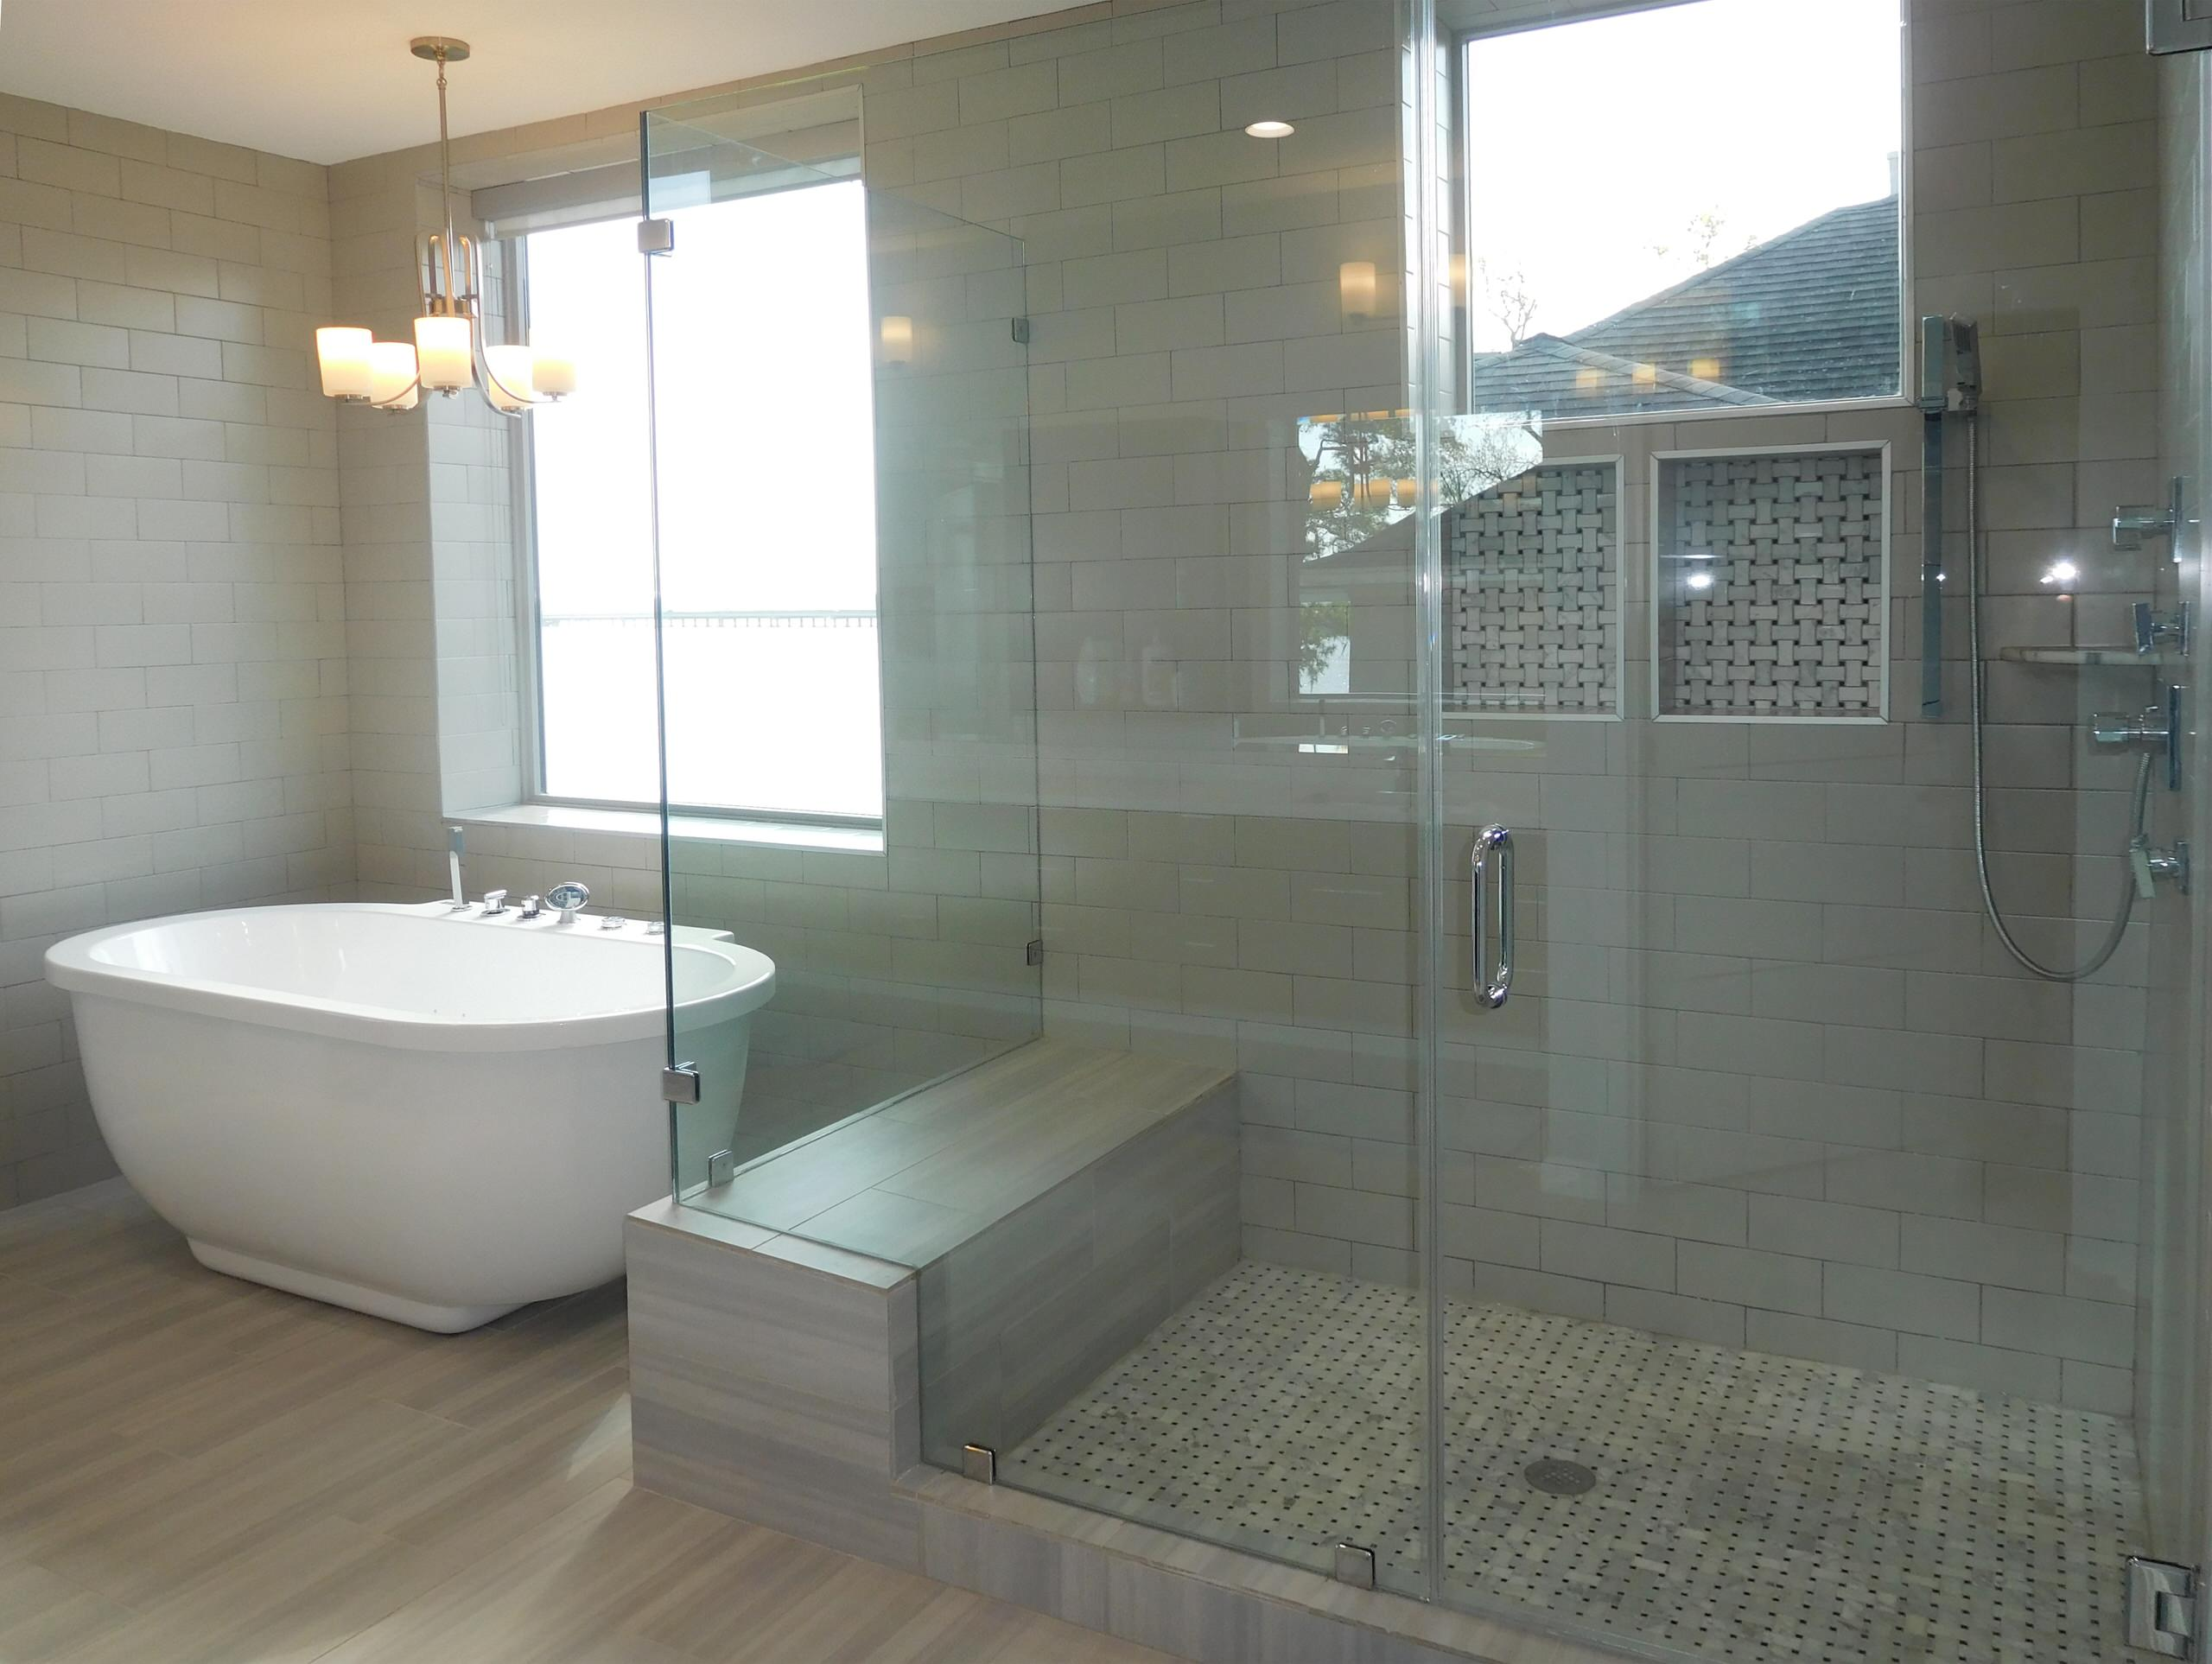 Freestanding tub with separate shower